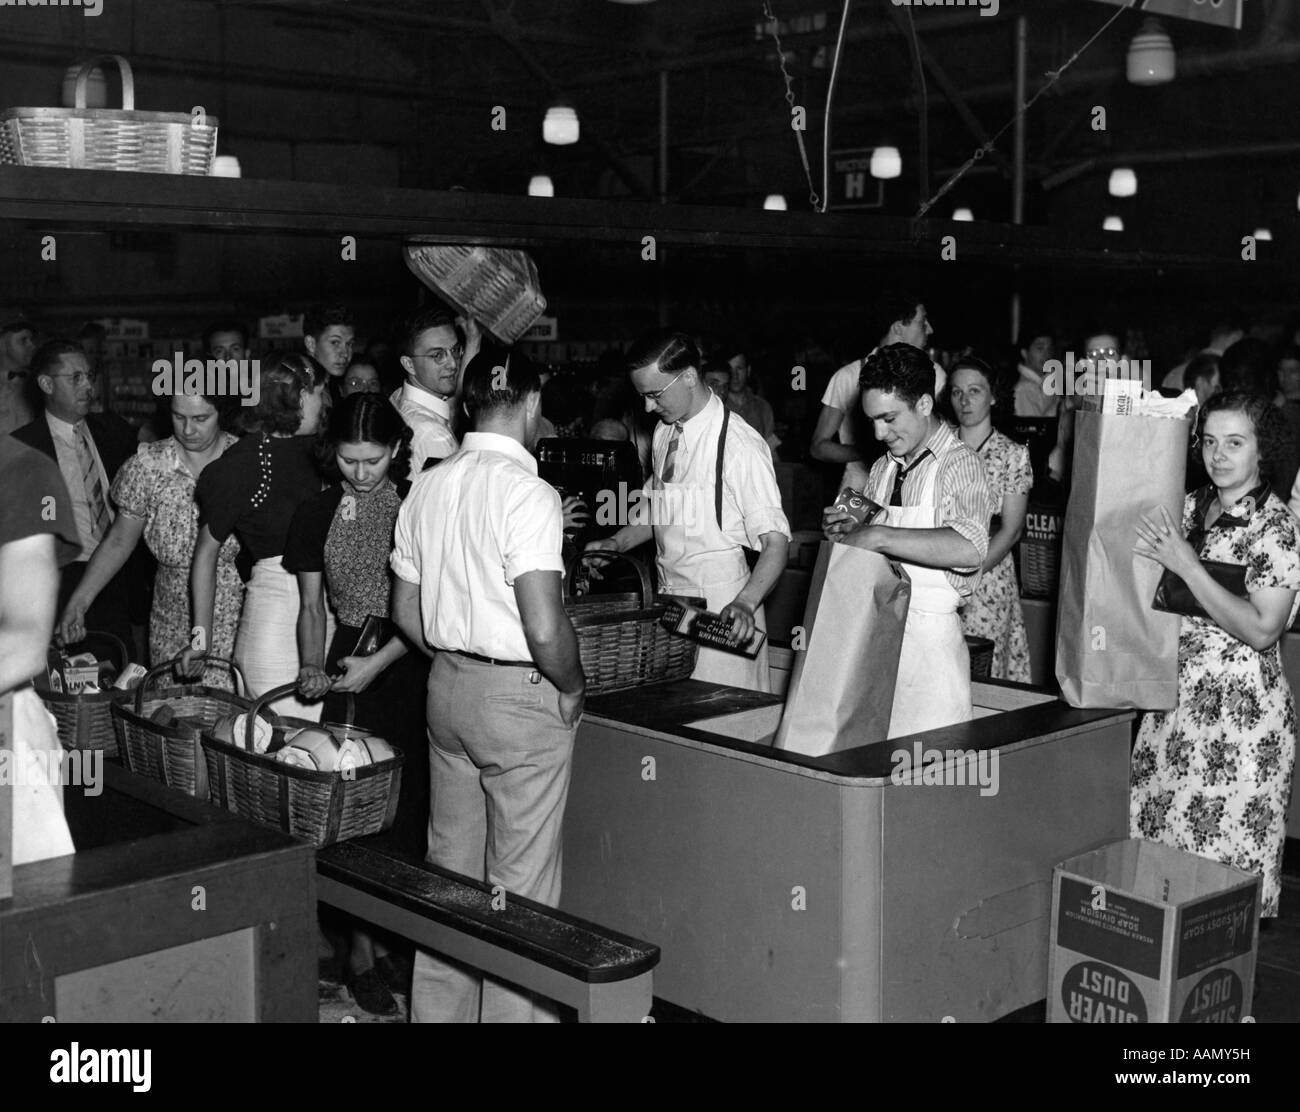 1930s 1939 CHECKOUT CASH REGISTERS SUPERMARKET TRENTON NJ CUSTOMERS CARRY FOOD AND GROCERIES - Stock Image